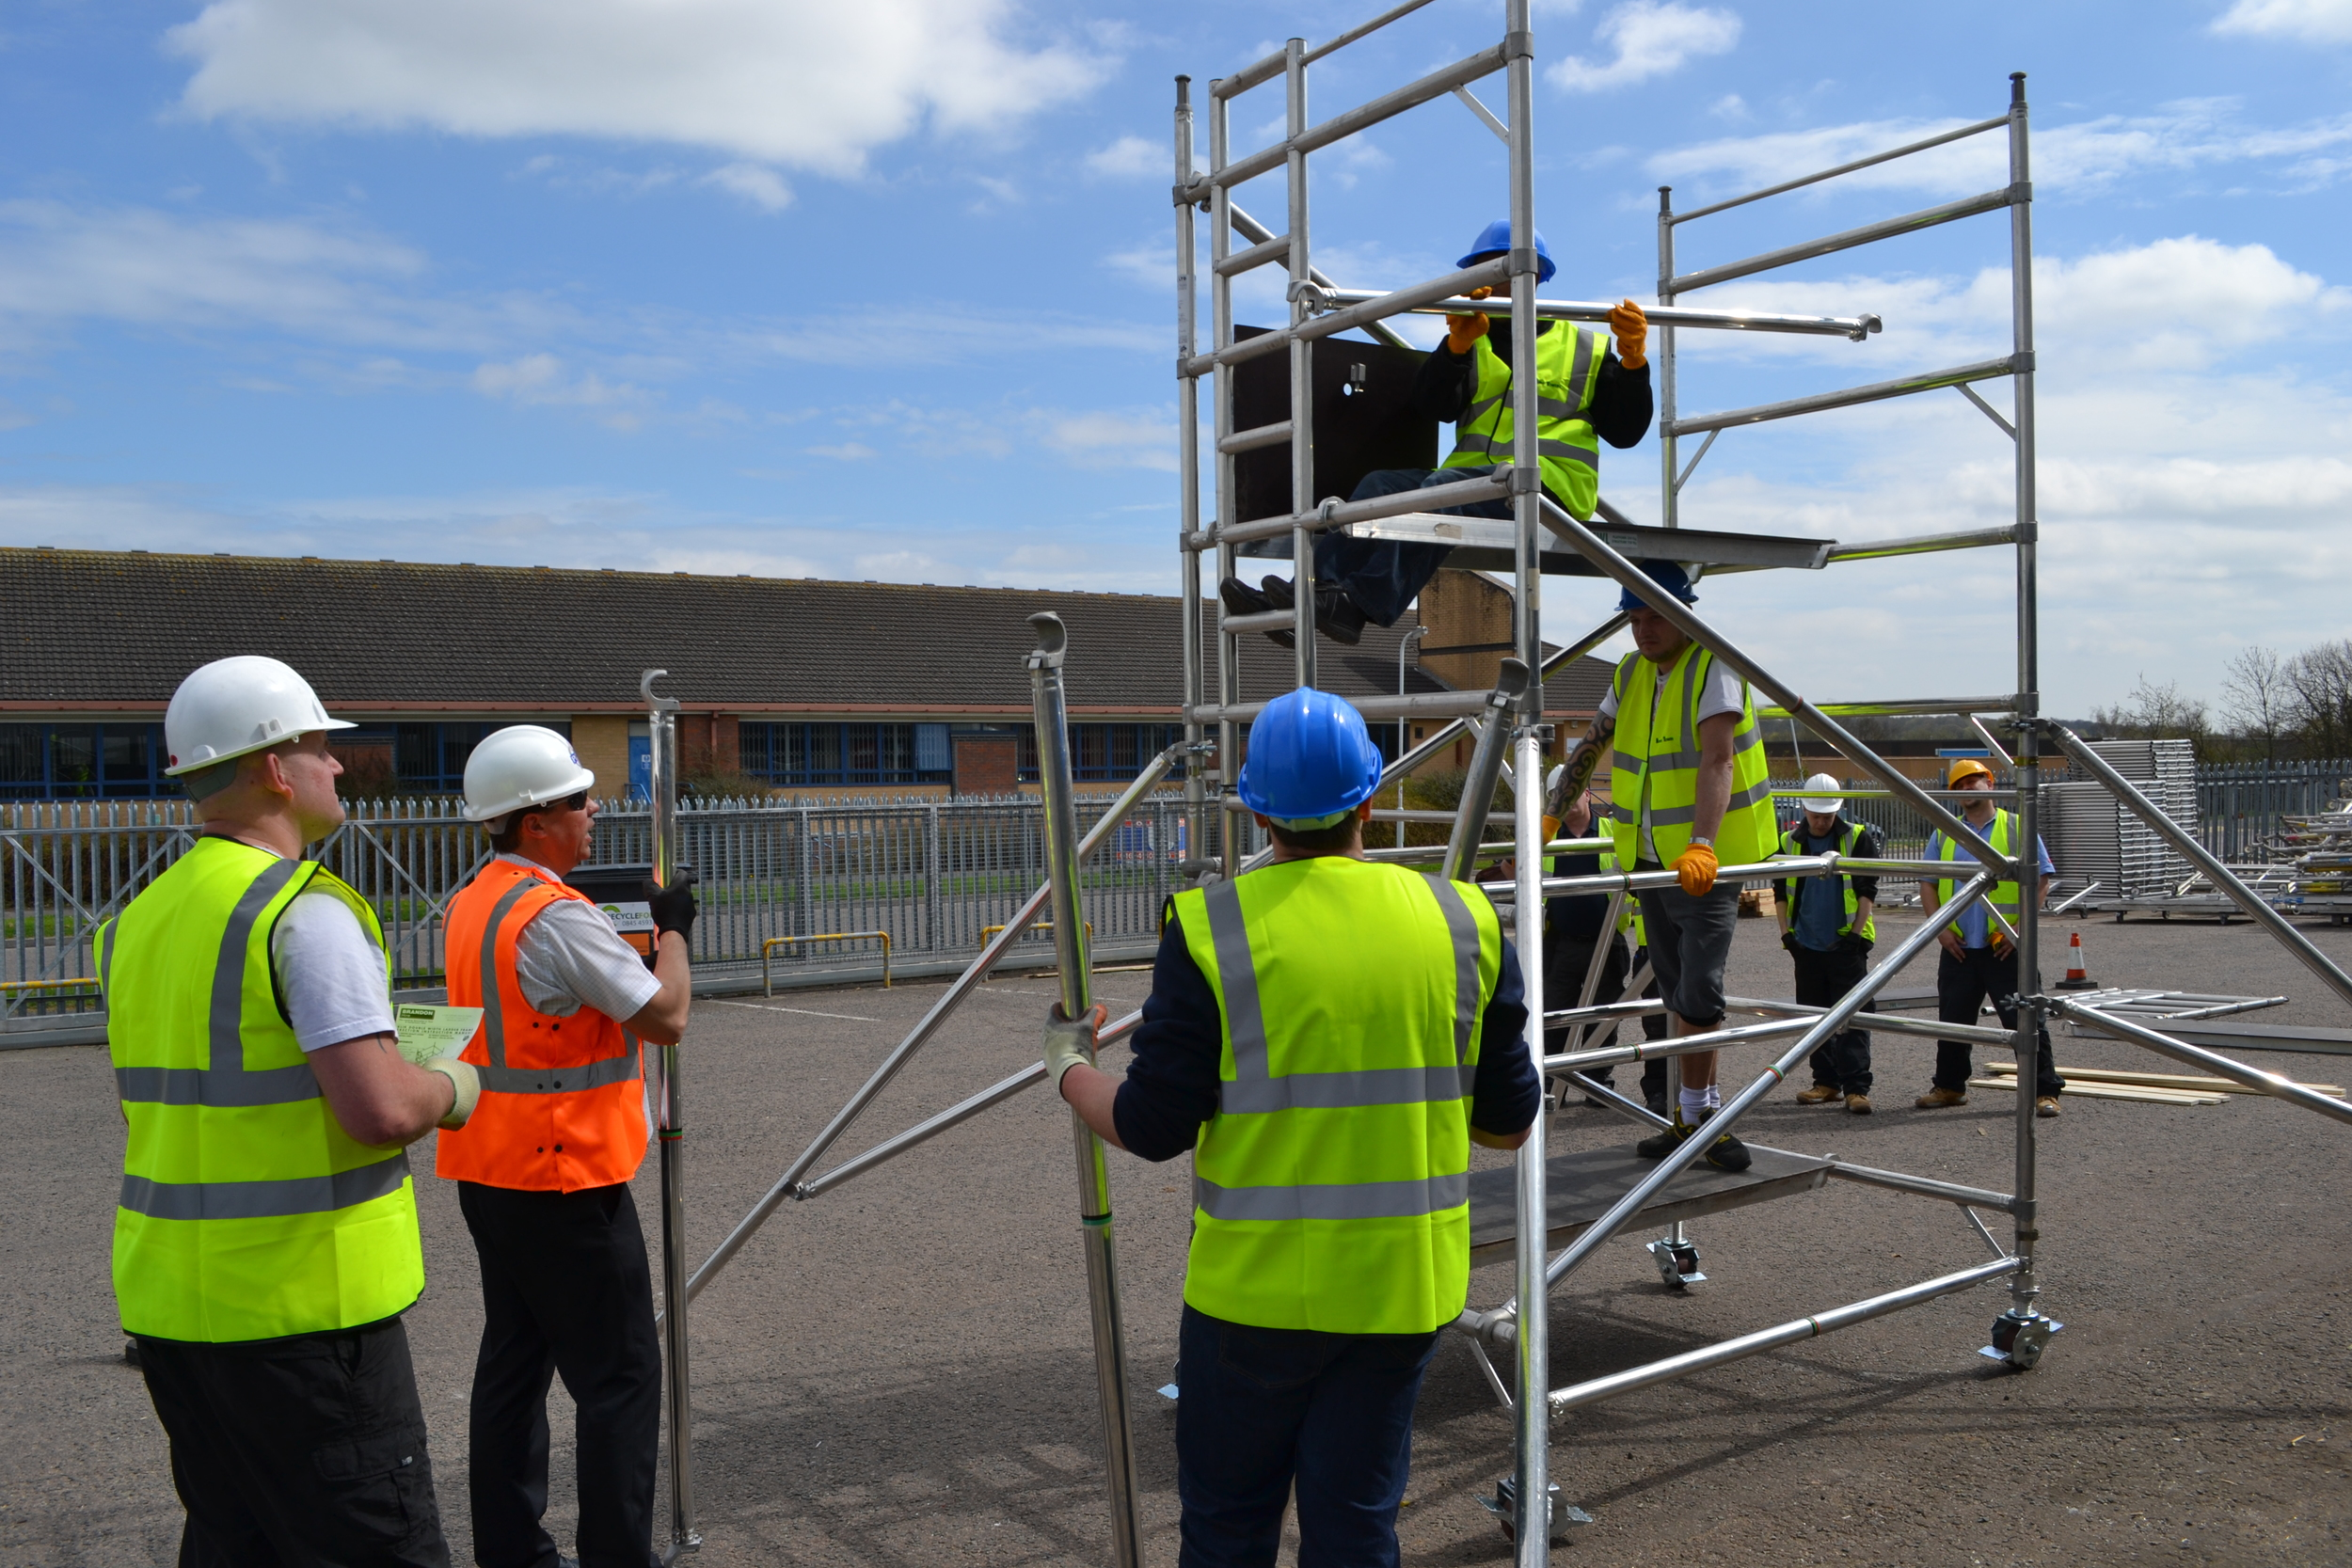 Euro Towers Ltd, Tower training, PASMA Training, Towers for Users, working at height, safe access, training. Northamptonshire